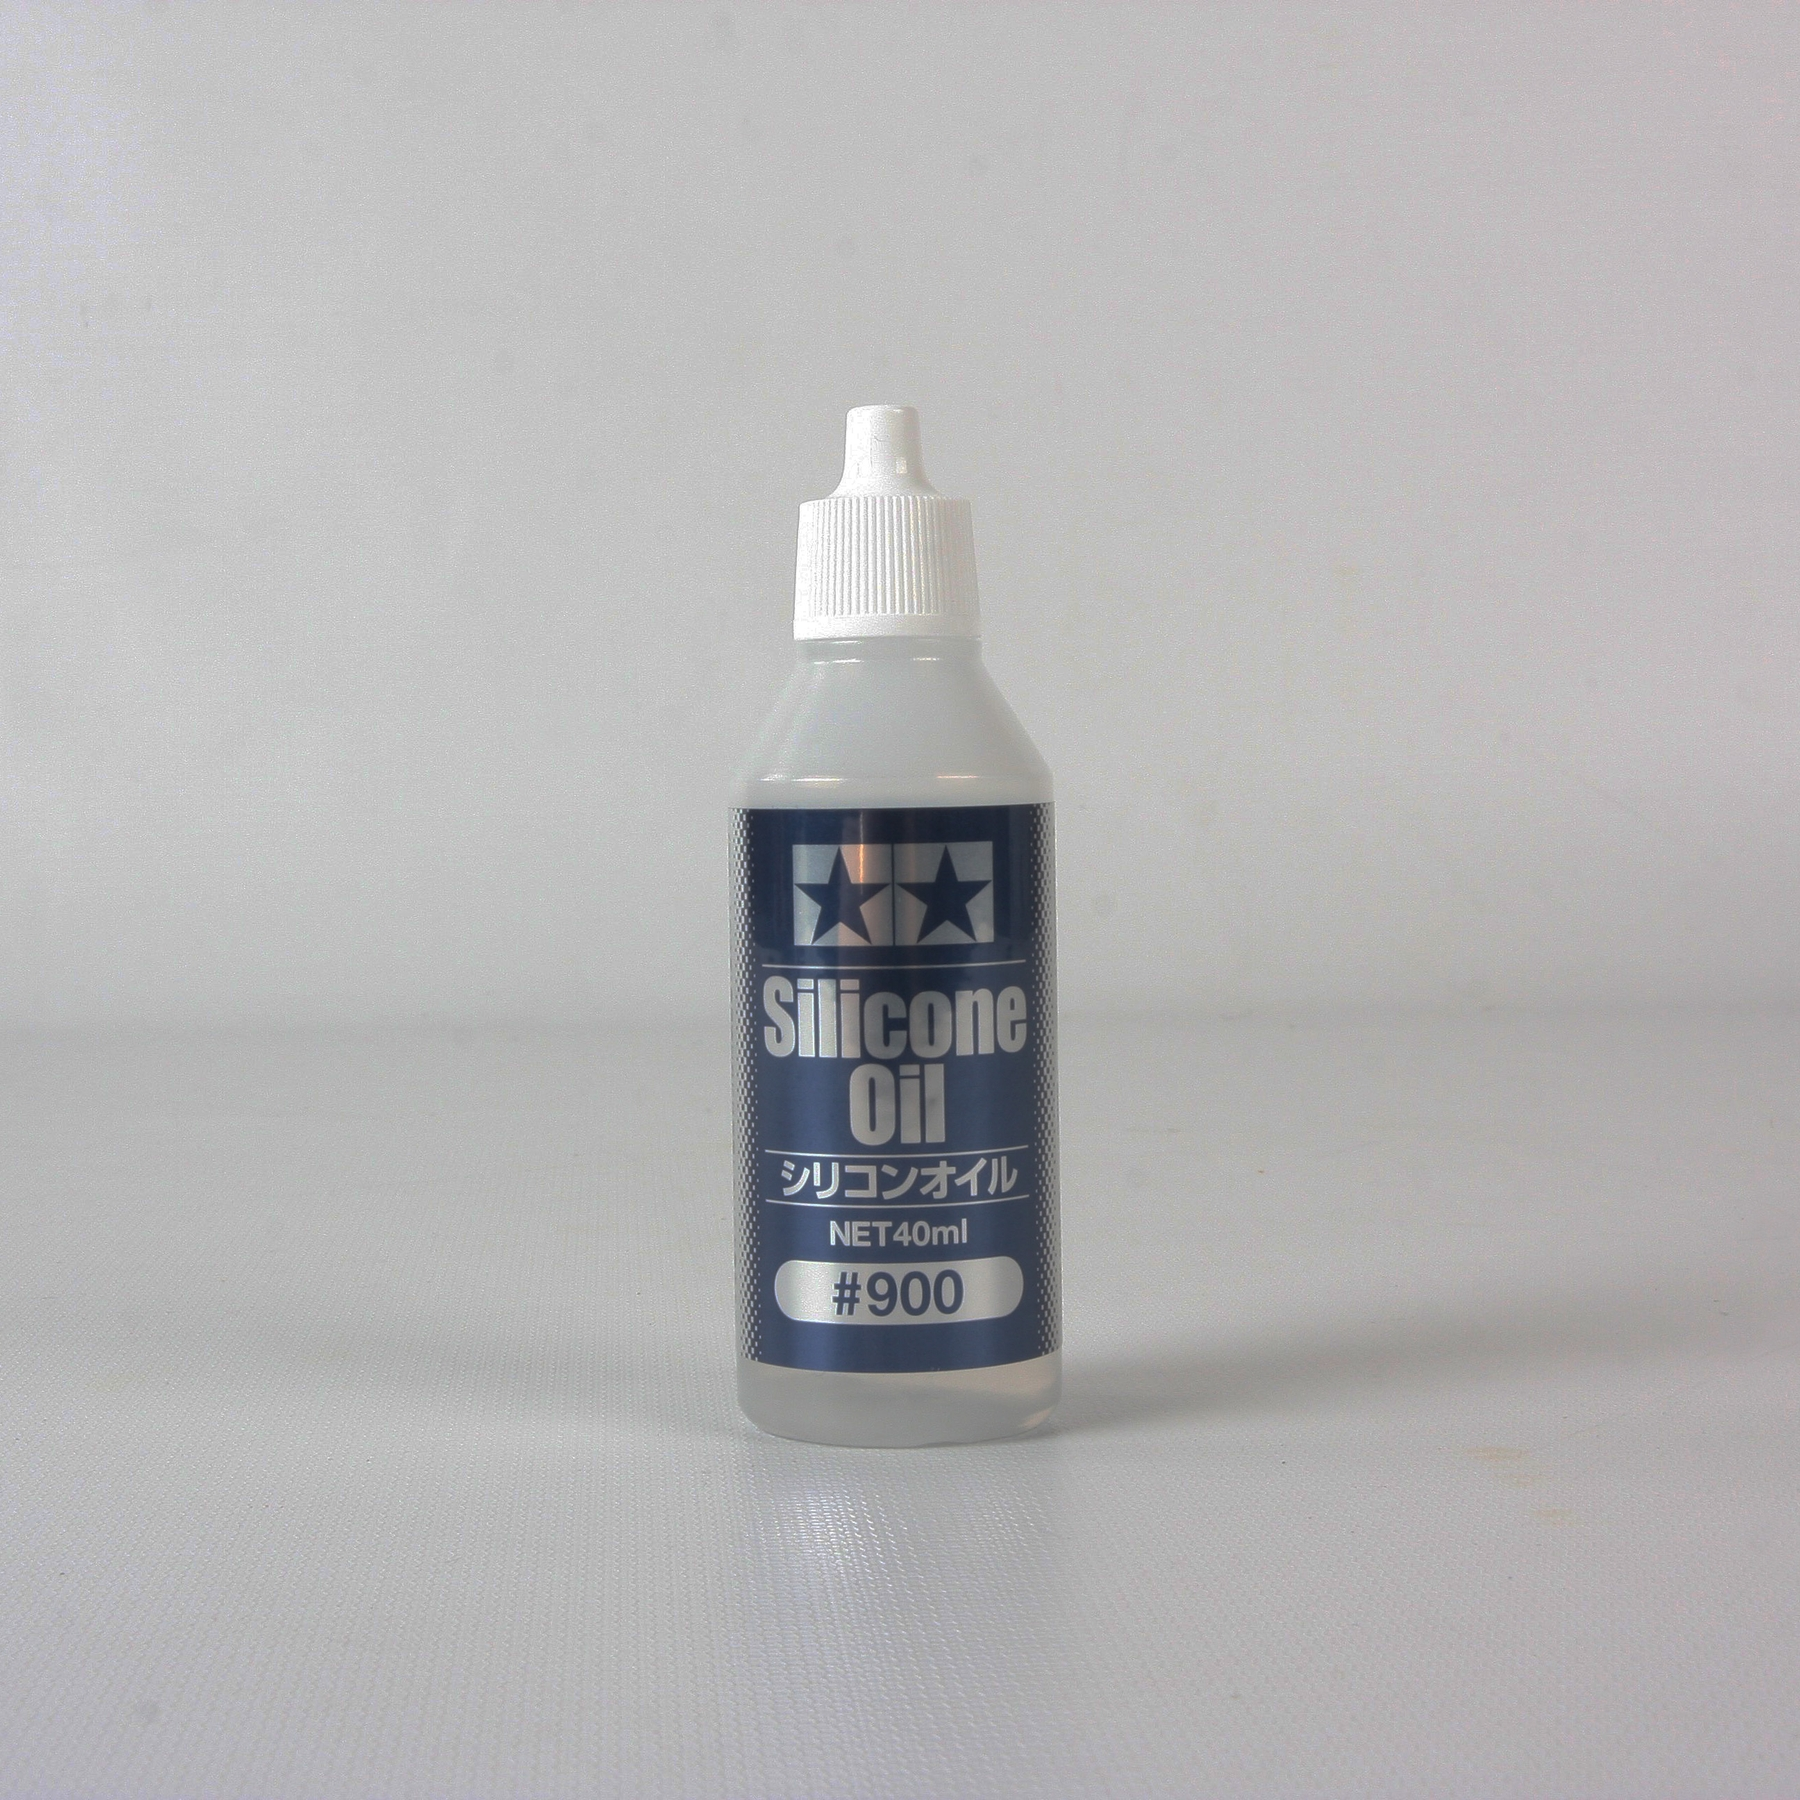 Rc Silicone Oil #900